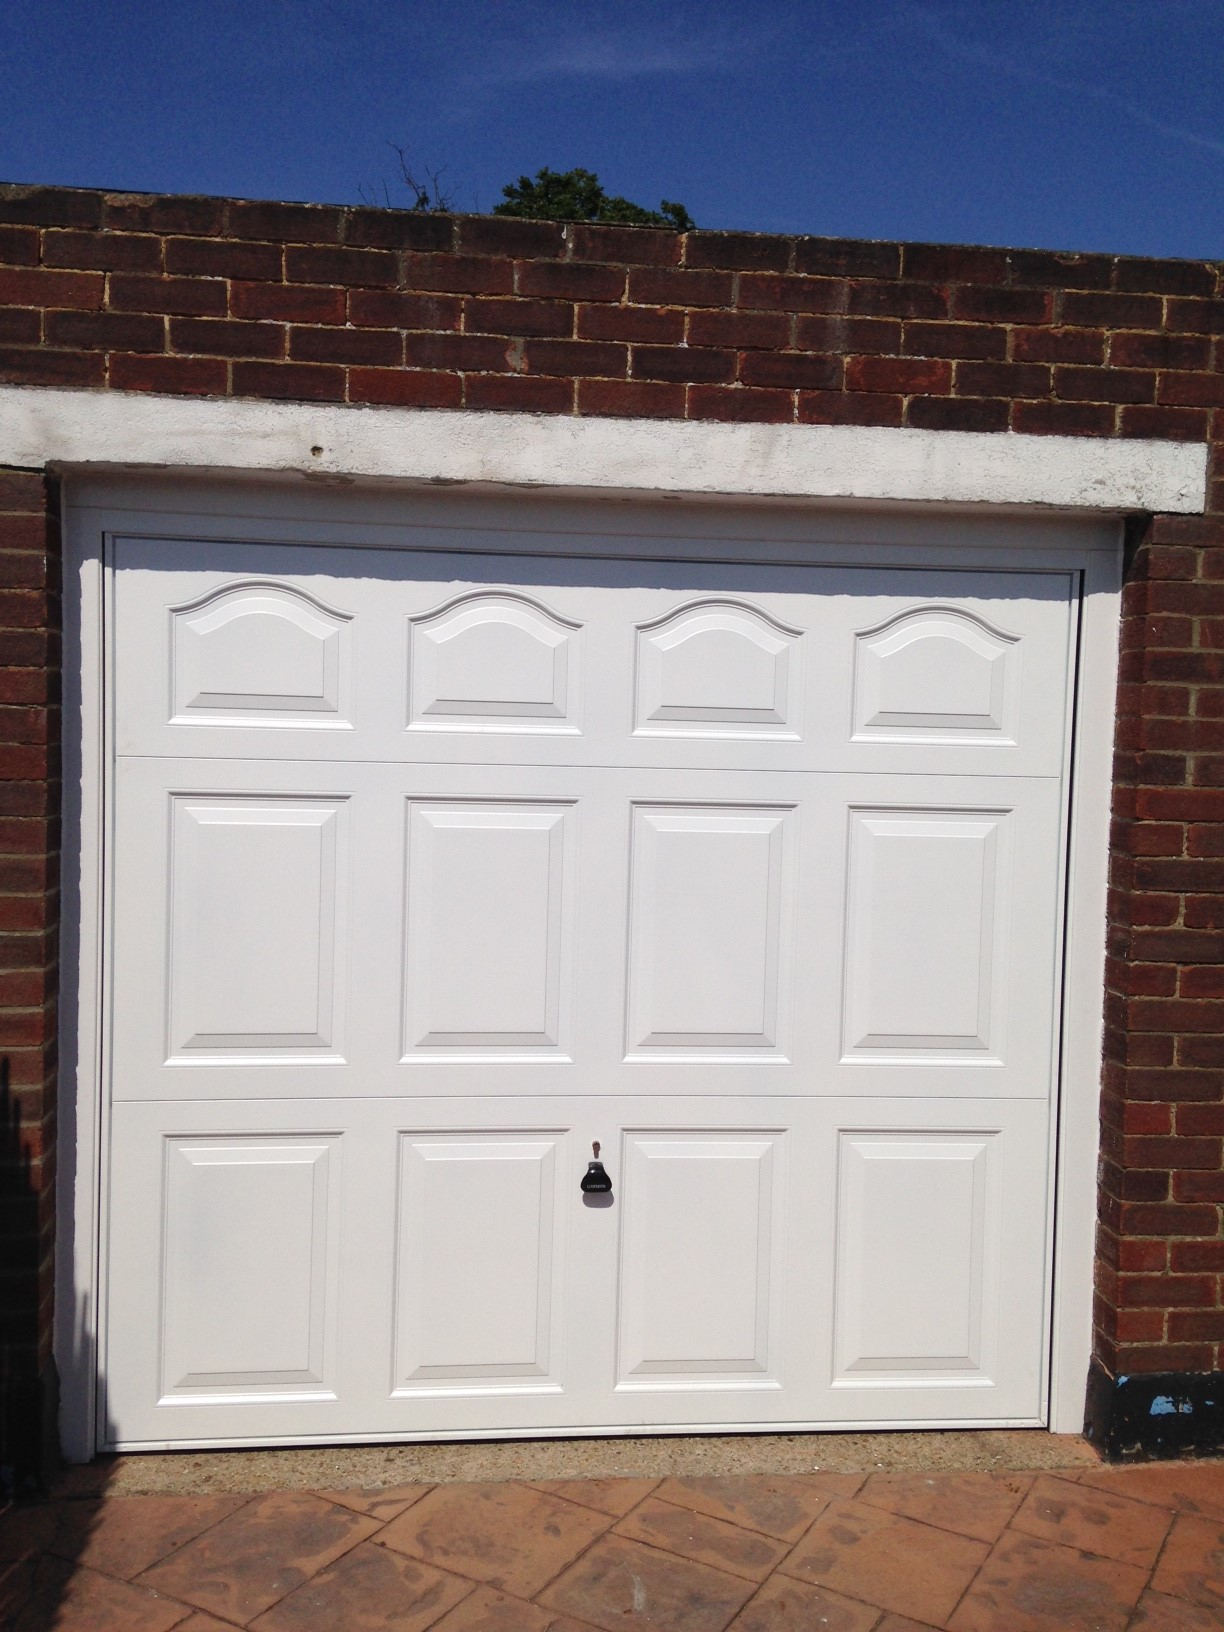 1632 #2E457E Garage Doors Oxted Surrey KENT AND SUSSEX GARAGE DOORS wallpaper Garage Doors Kent 37251224